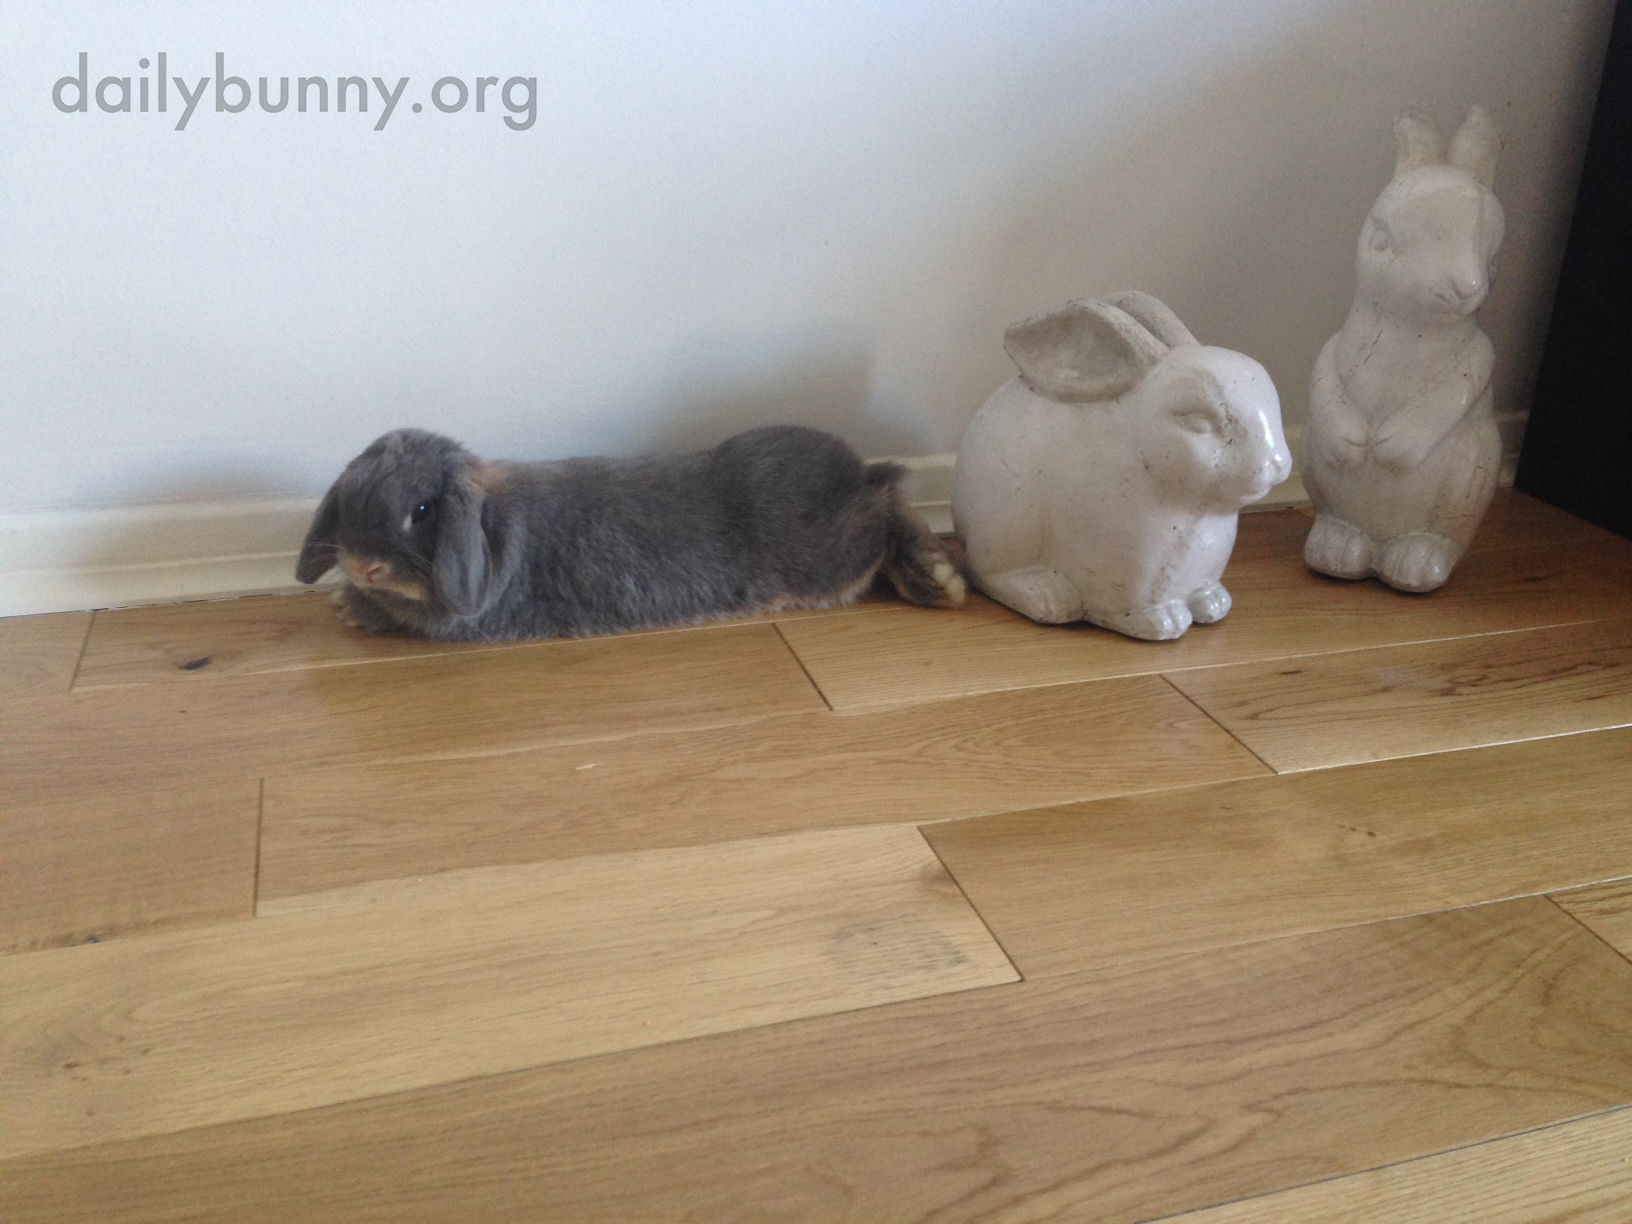 Can't a Grumpy Bunny Just Lie Down without a Human Ooh-ing and Aww-ing and Taking Pictures? 3